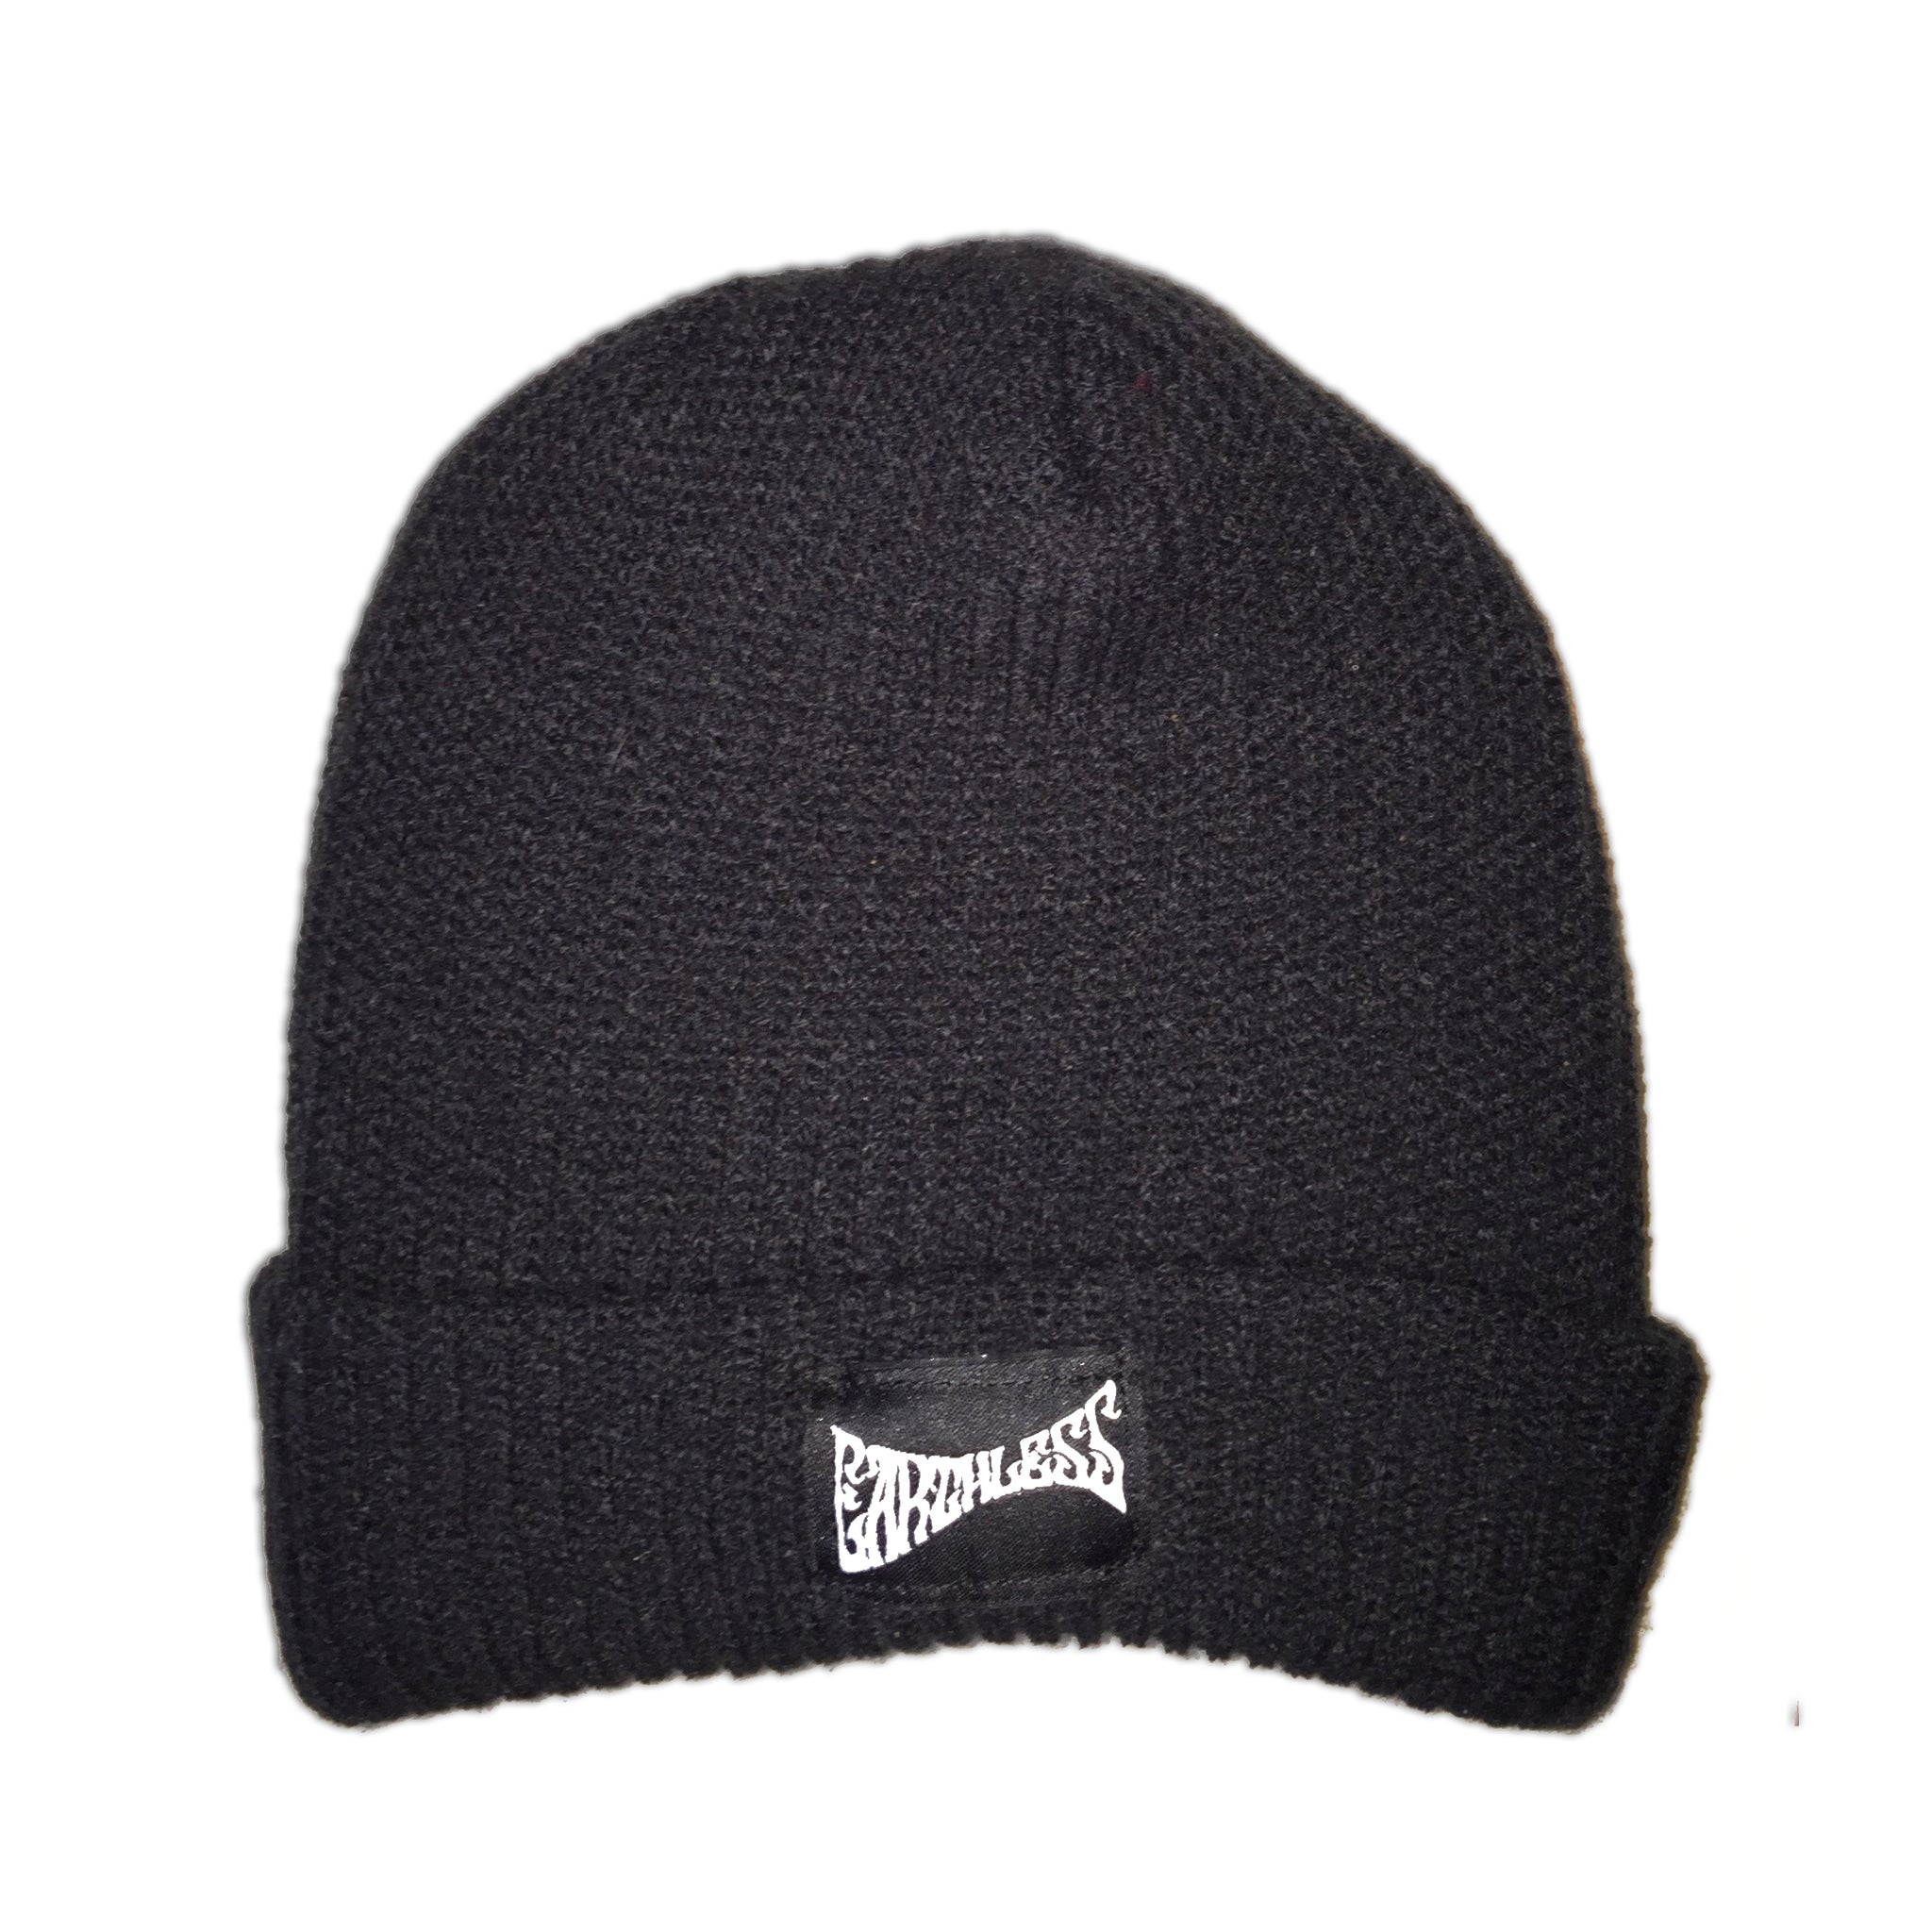 Knit Hat Black